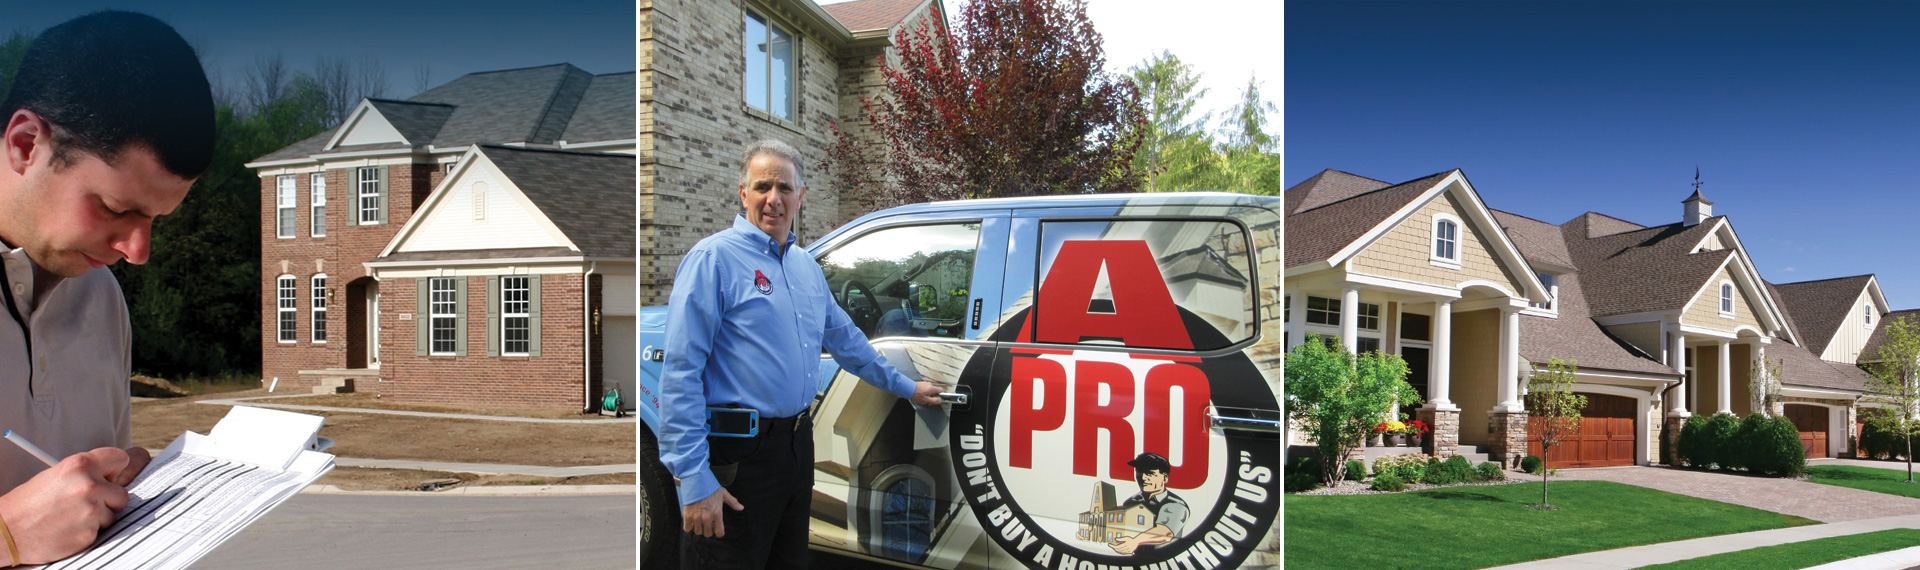 A-Pro Southwest Ohio Home Inspection Hamilton OH